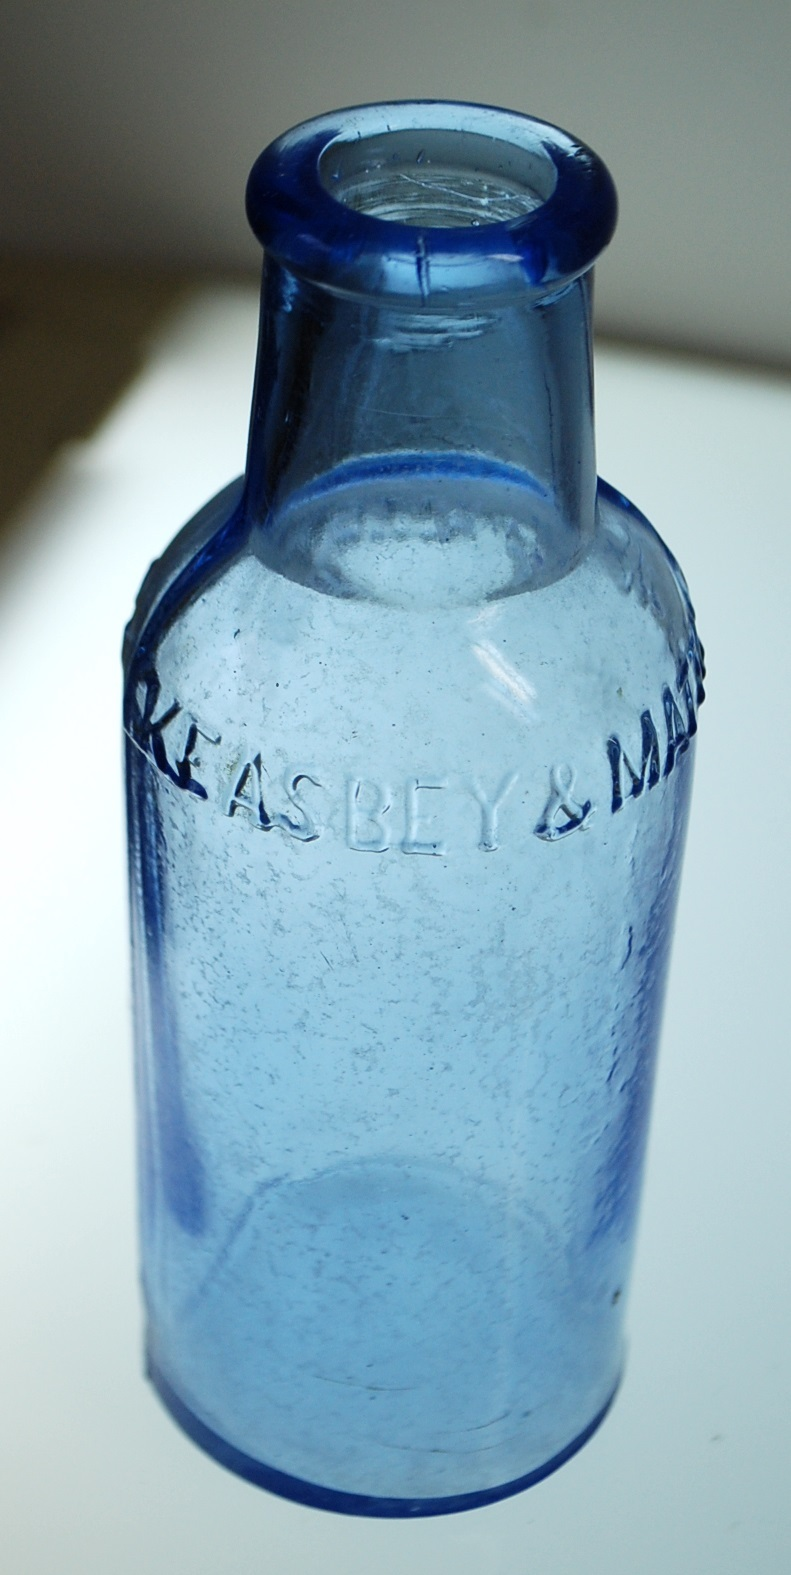 Keasbey & Mattison Co Blue Medicine Bottle and 50 similar items